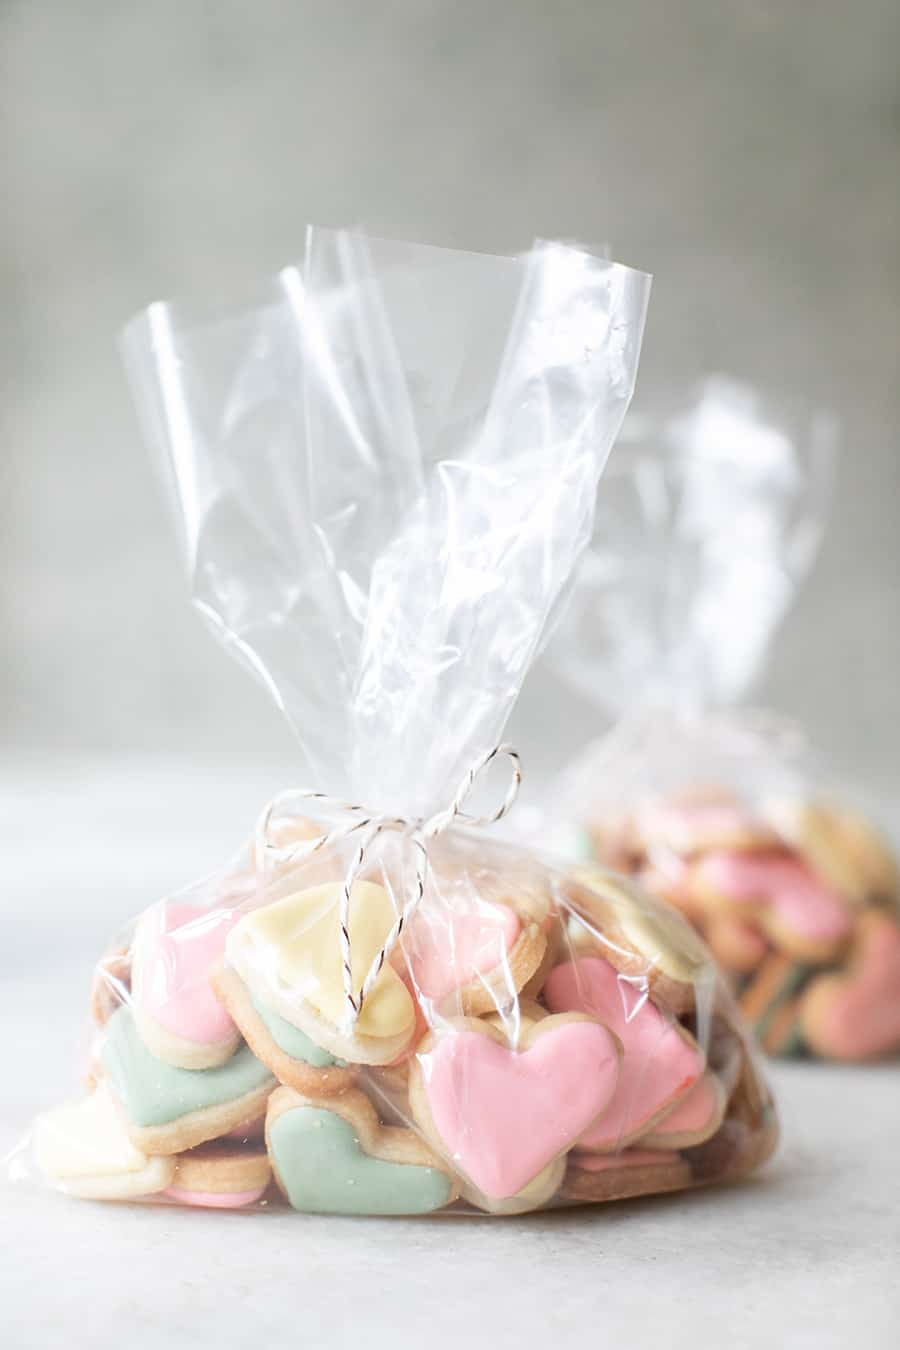 mini heart shaped sugar cookies in a plastic bag to give as a Valentine's Day gift